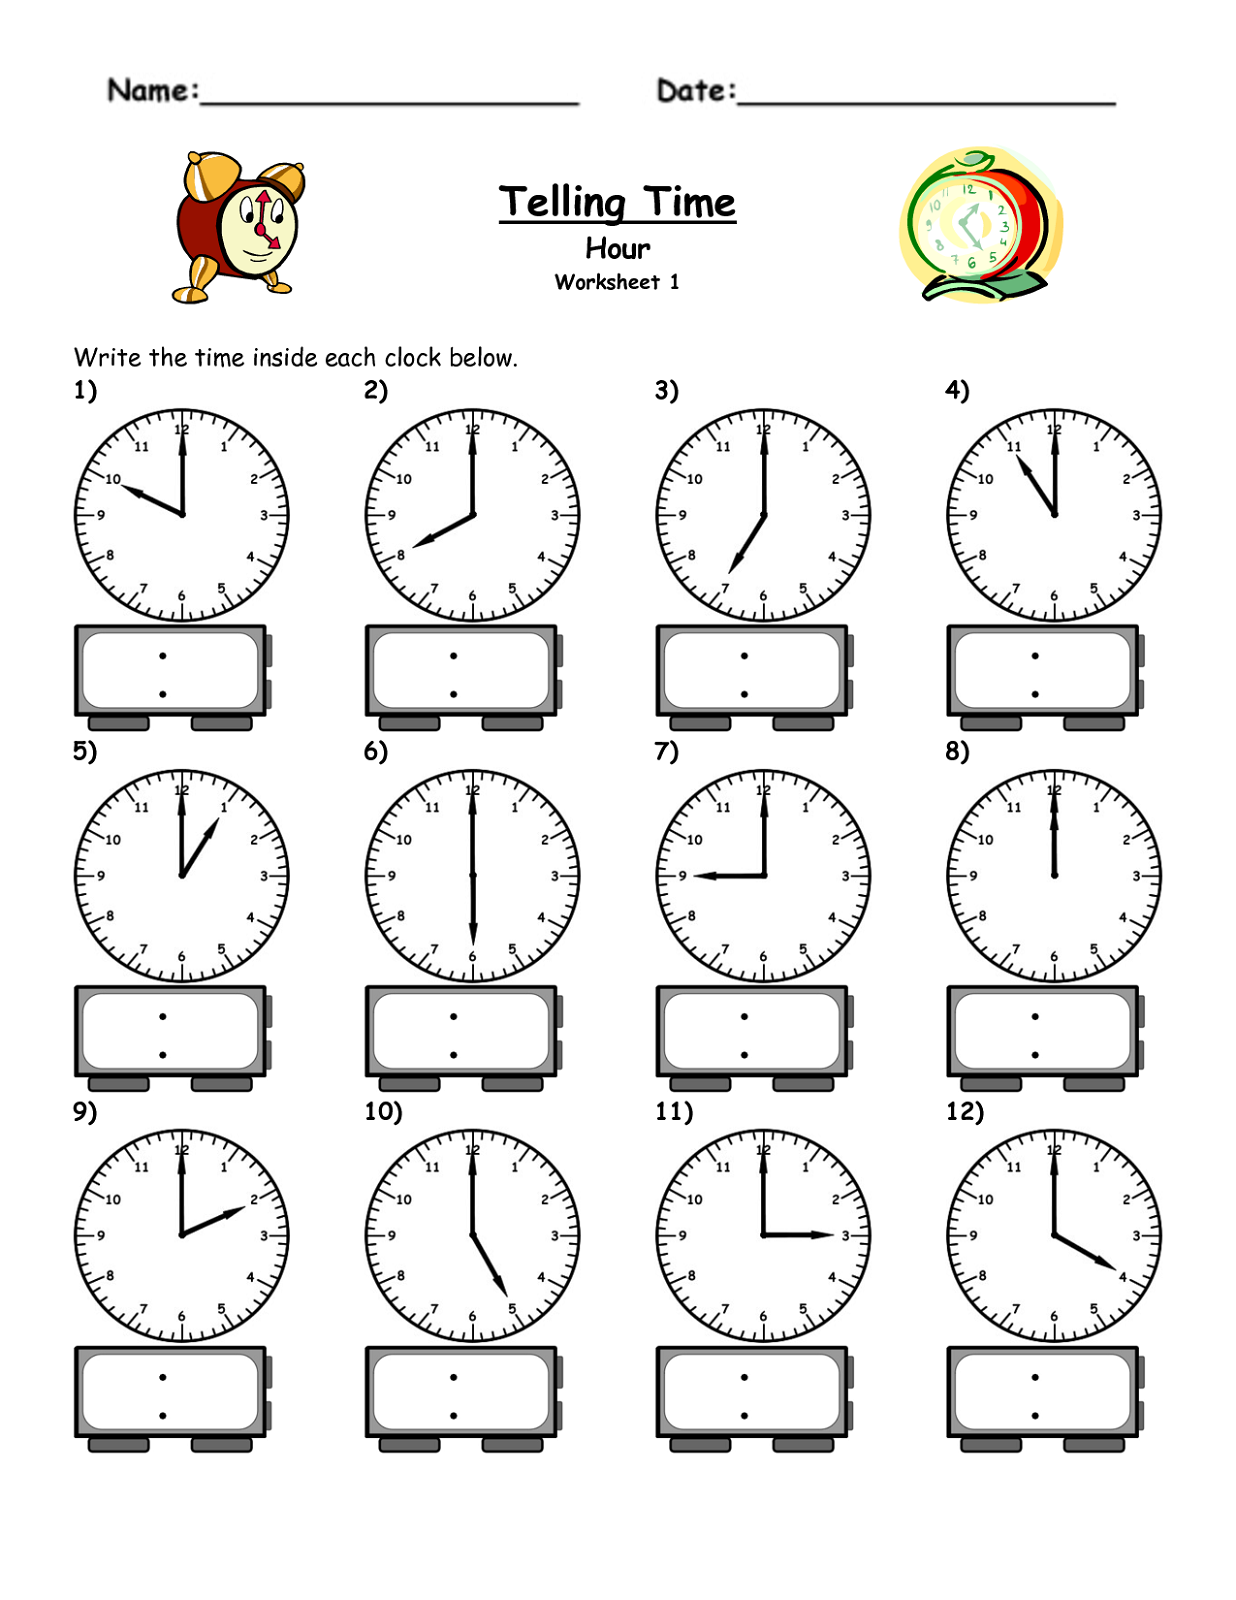 worksheet Free Telling Time Worksheets worksheet 33002546 telling time worksheets kindergarten free printable clock davezan kindergarten